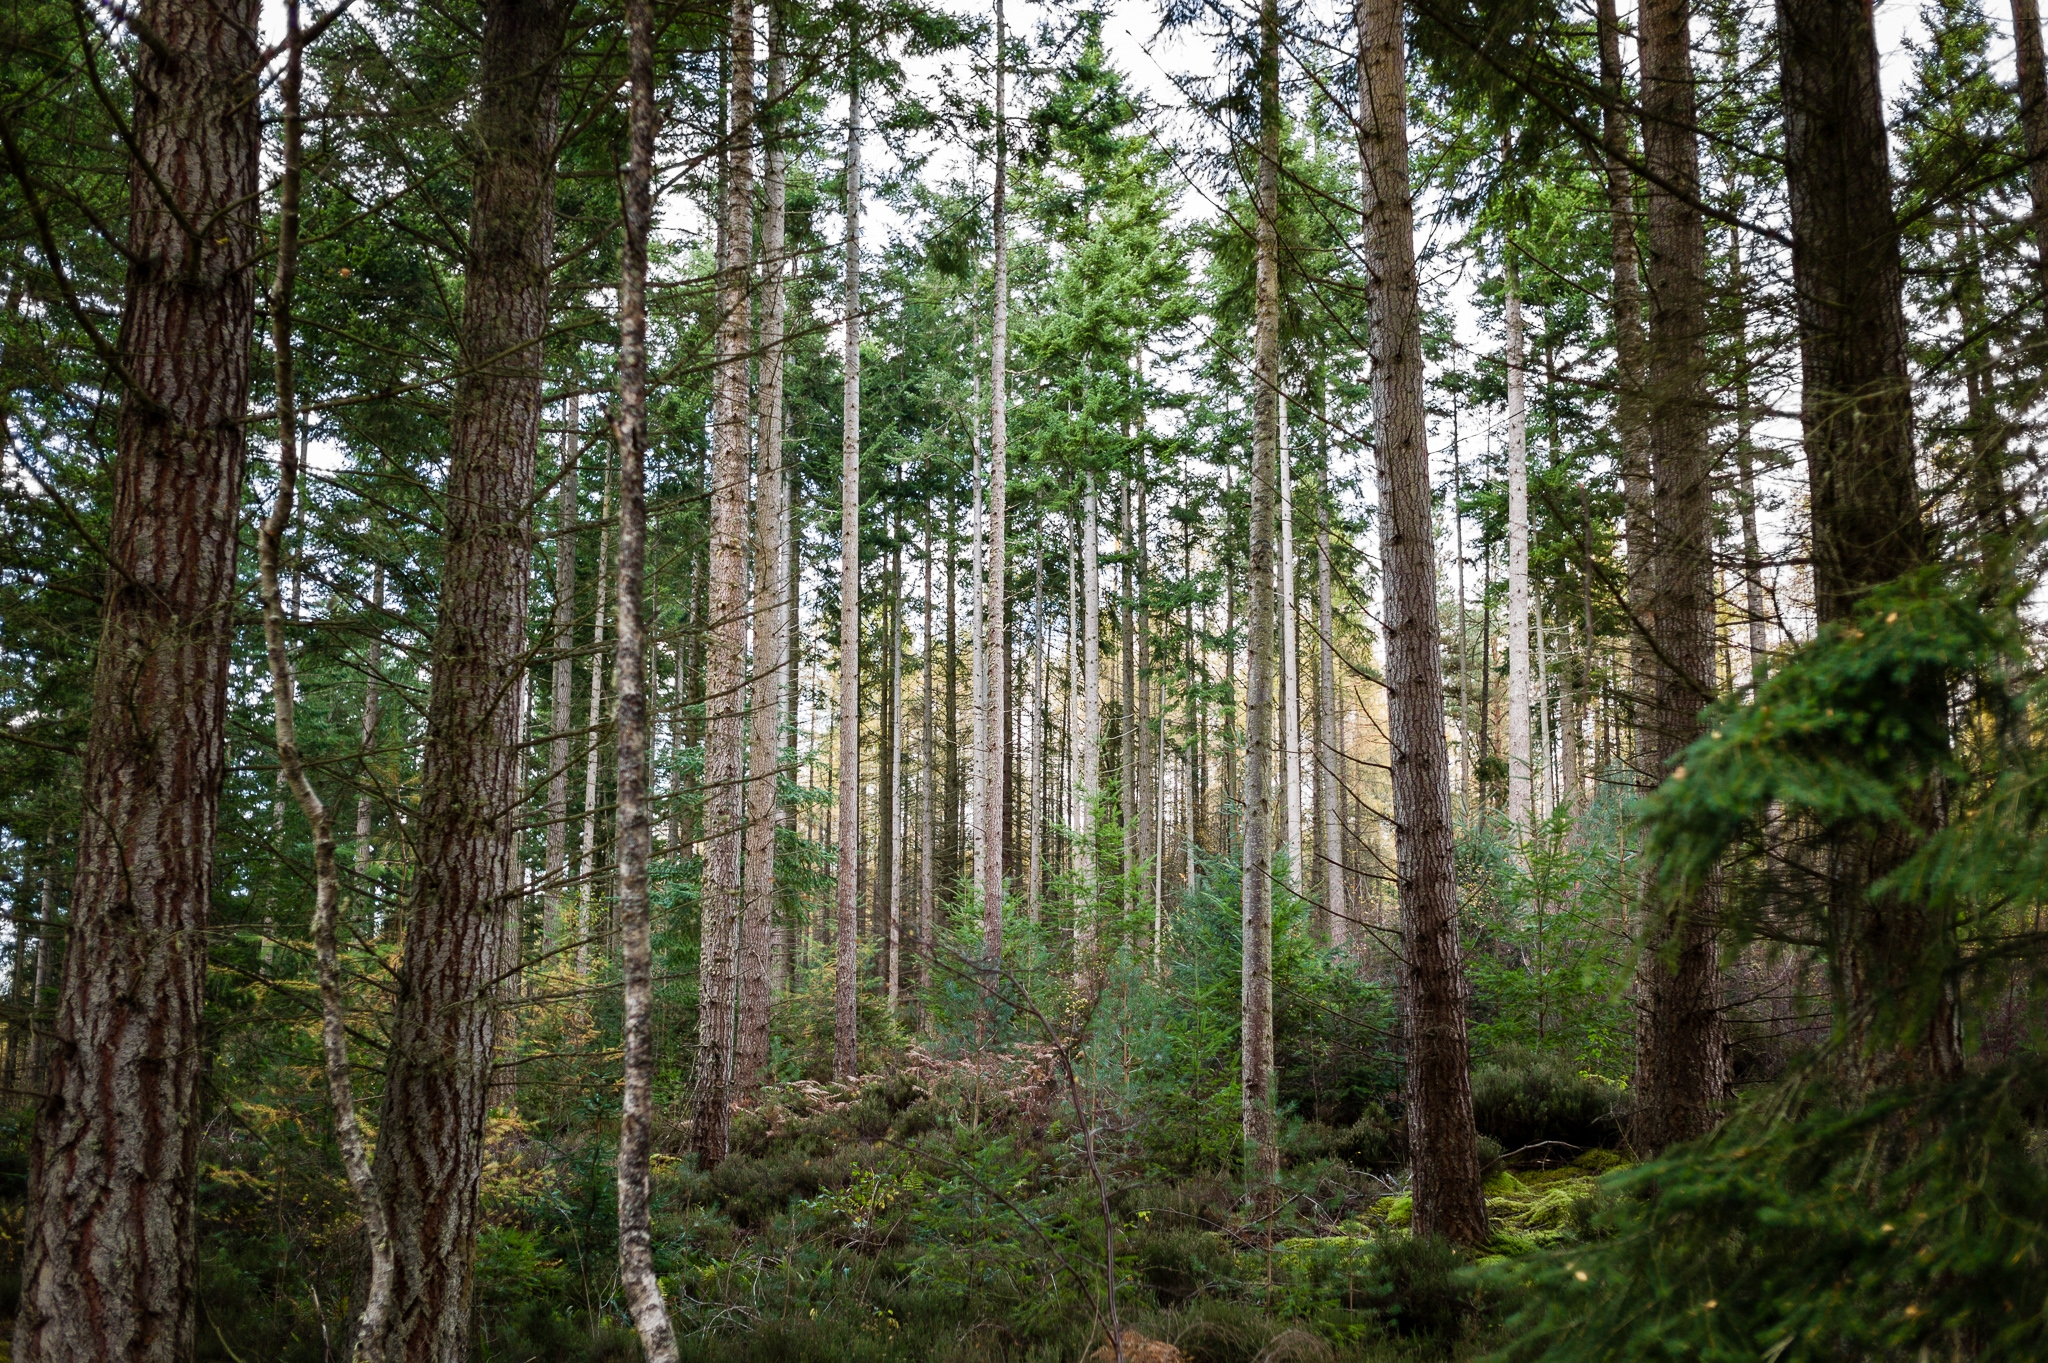 forest, winter, scotland, trees - dfcf | ello